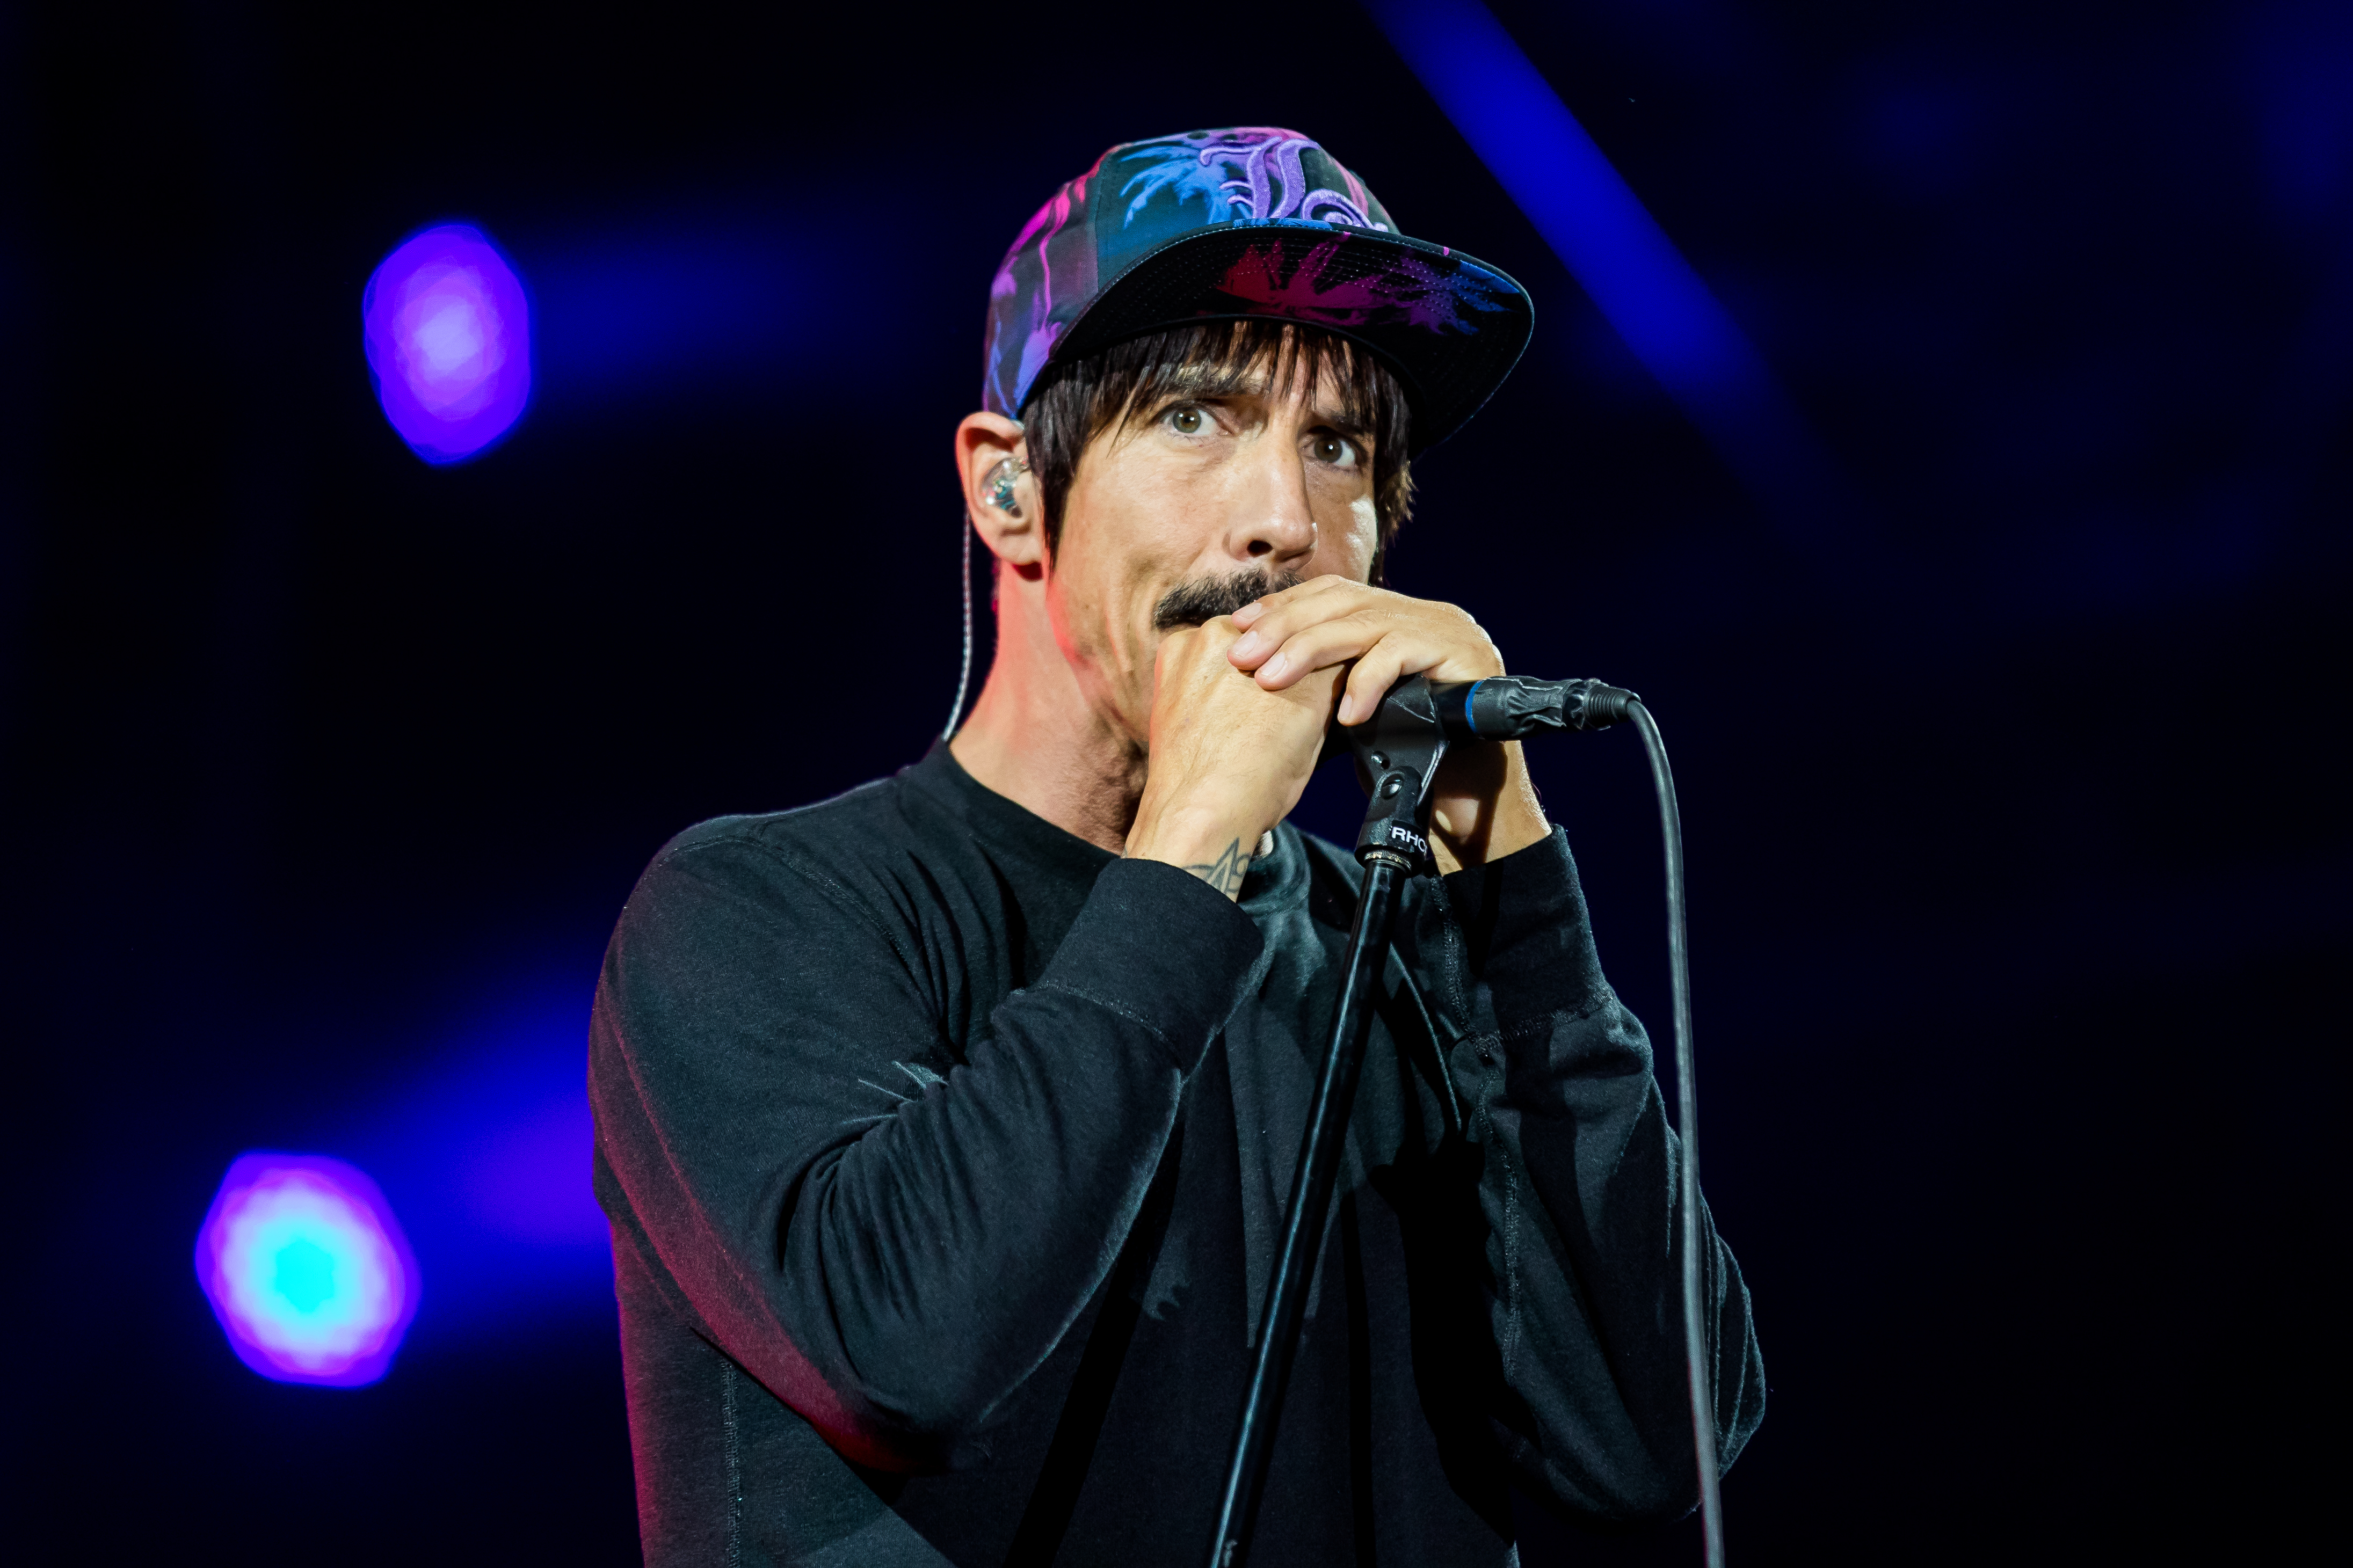 File:Red Hot Chili Peppers - Rock am Ring 2016 ... - photo#16